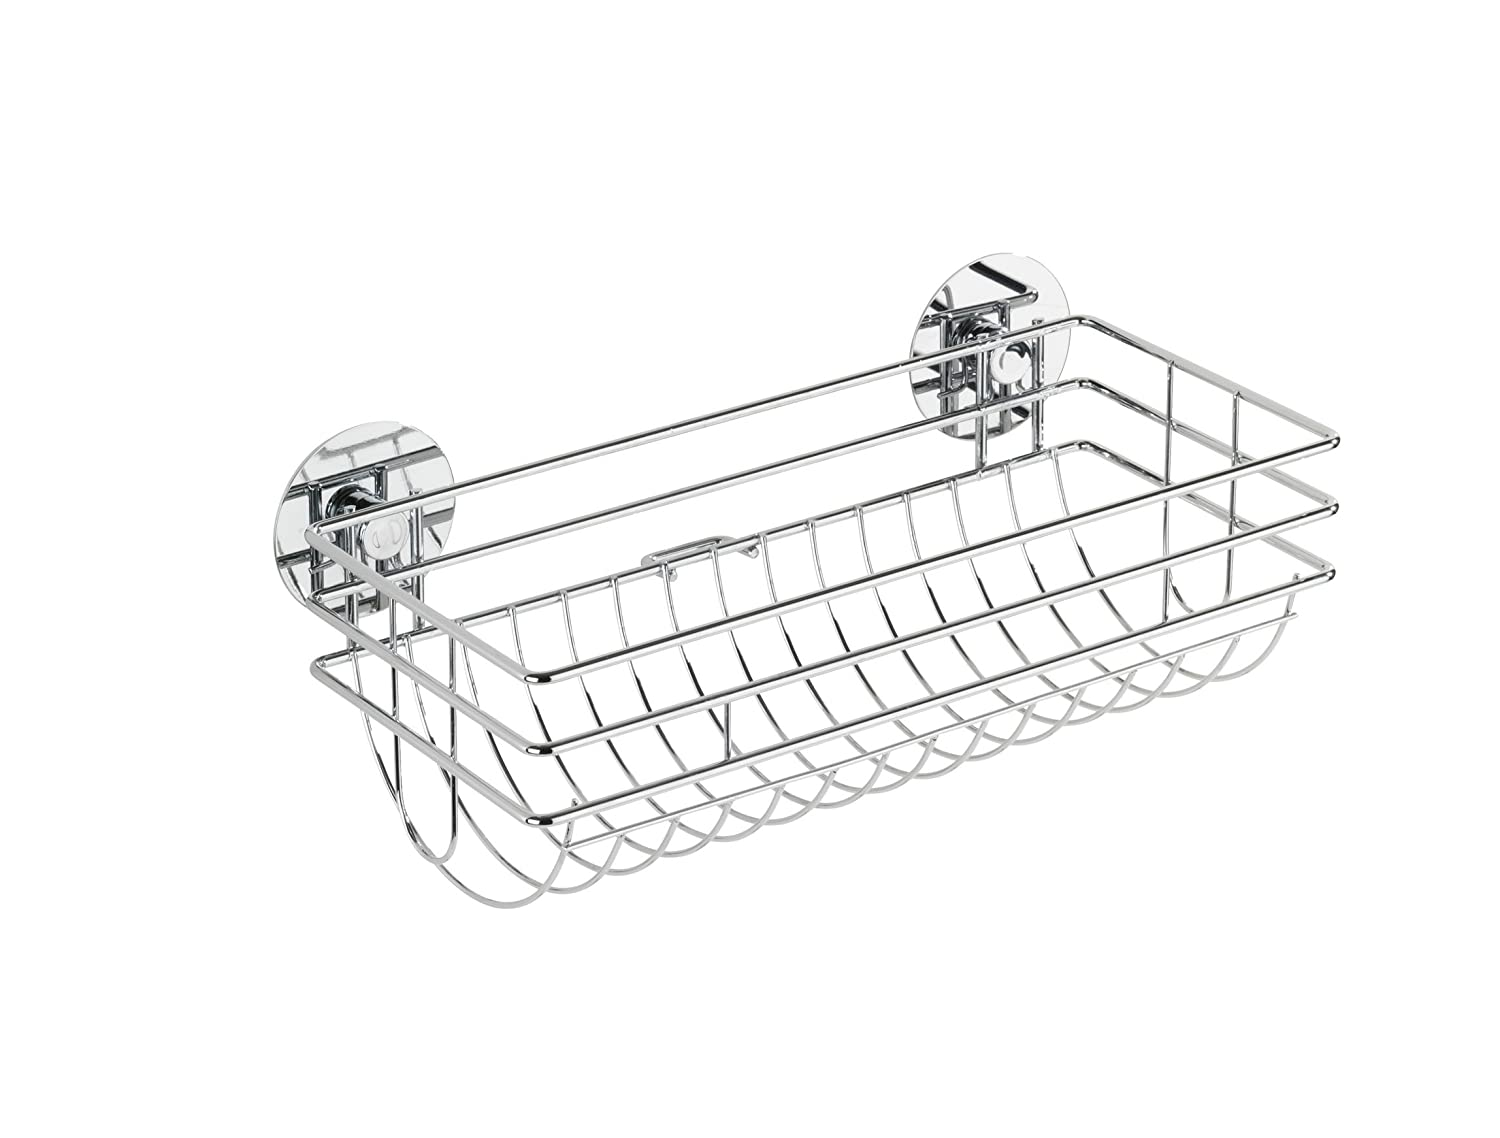 WENKO 5637100 Turbo-Loc basket - fixing without drilling, Chrome plated metal, 24.2 x 8.2 x 14 cm, Silver shiny